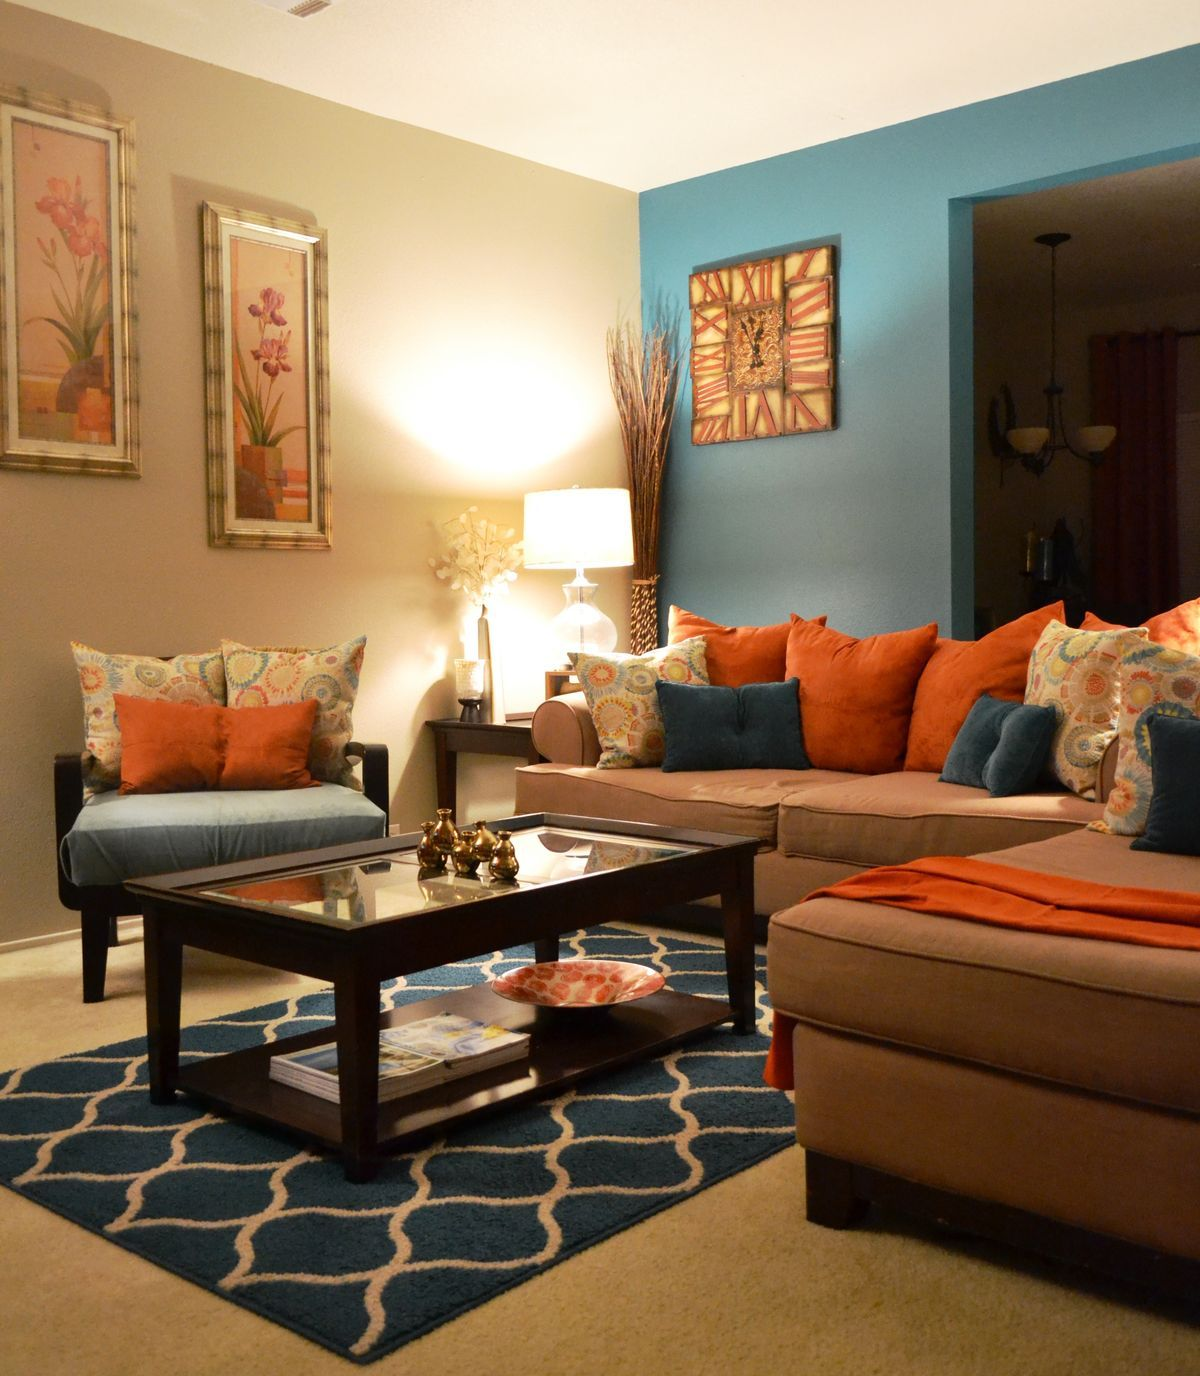 Baacfdbacjpg  Pixels New - Brown and teal living room ideas